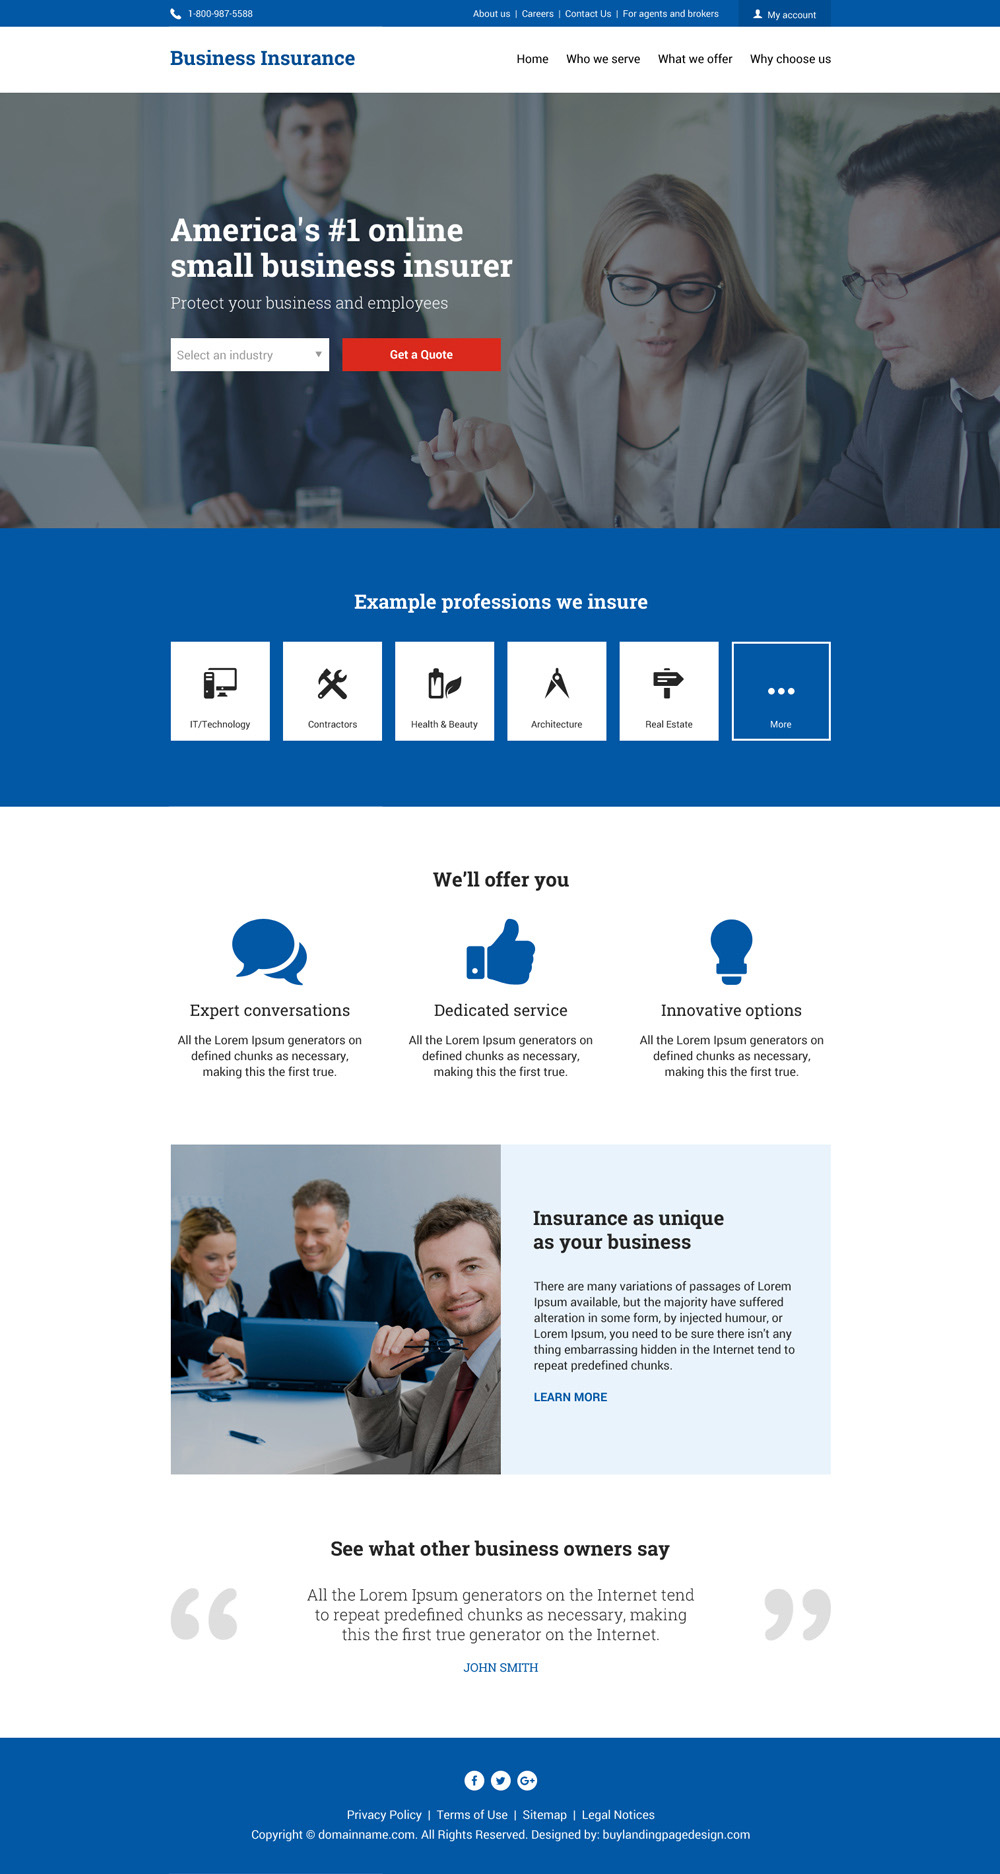 Business insurance responsive website design Be an